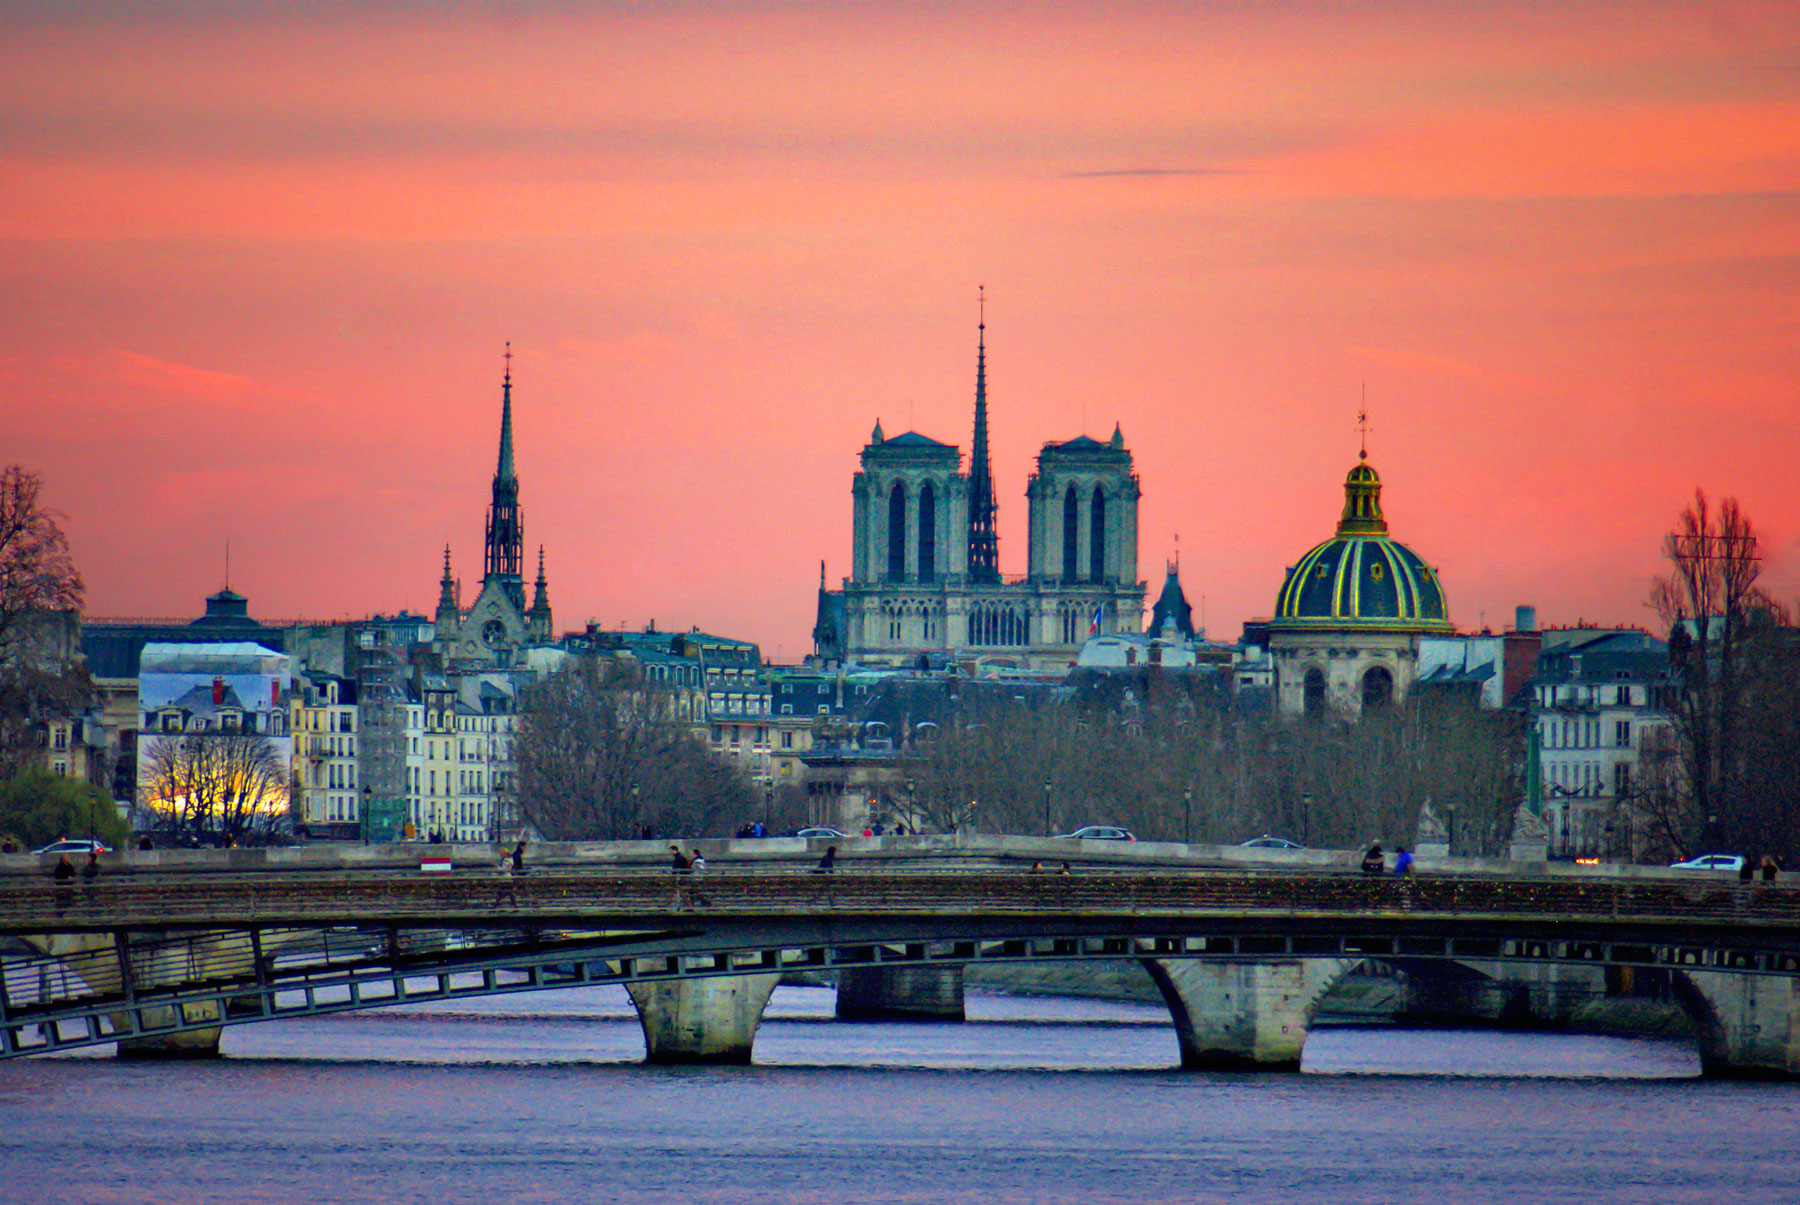 The Banks of the River Seine at dusk © French Moments